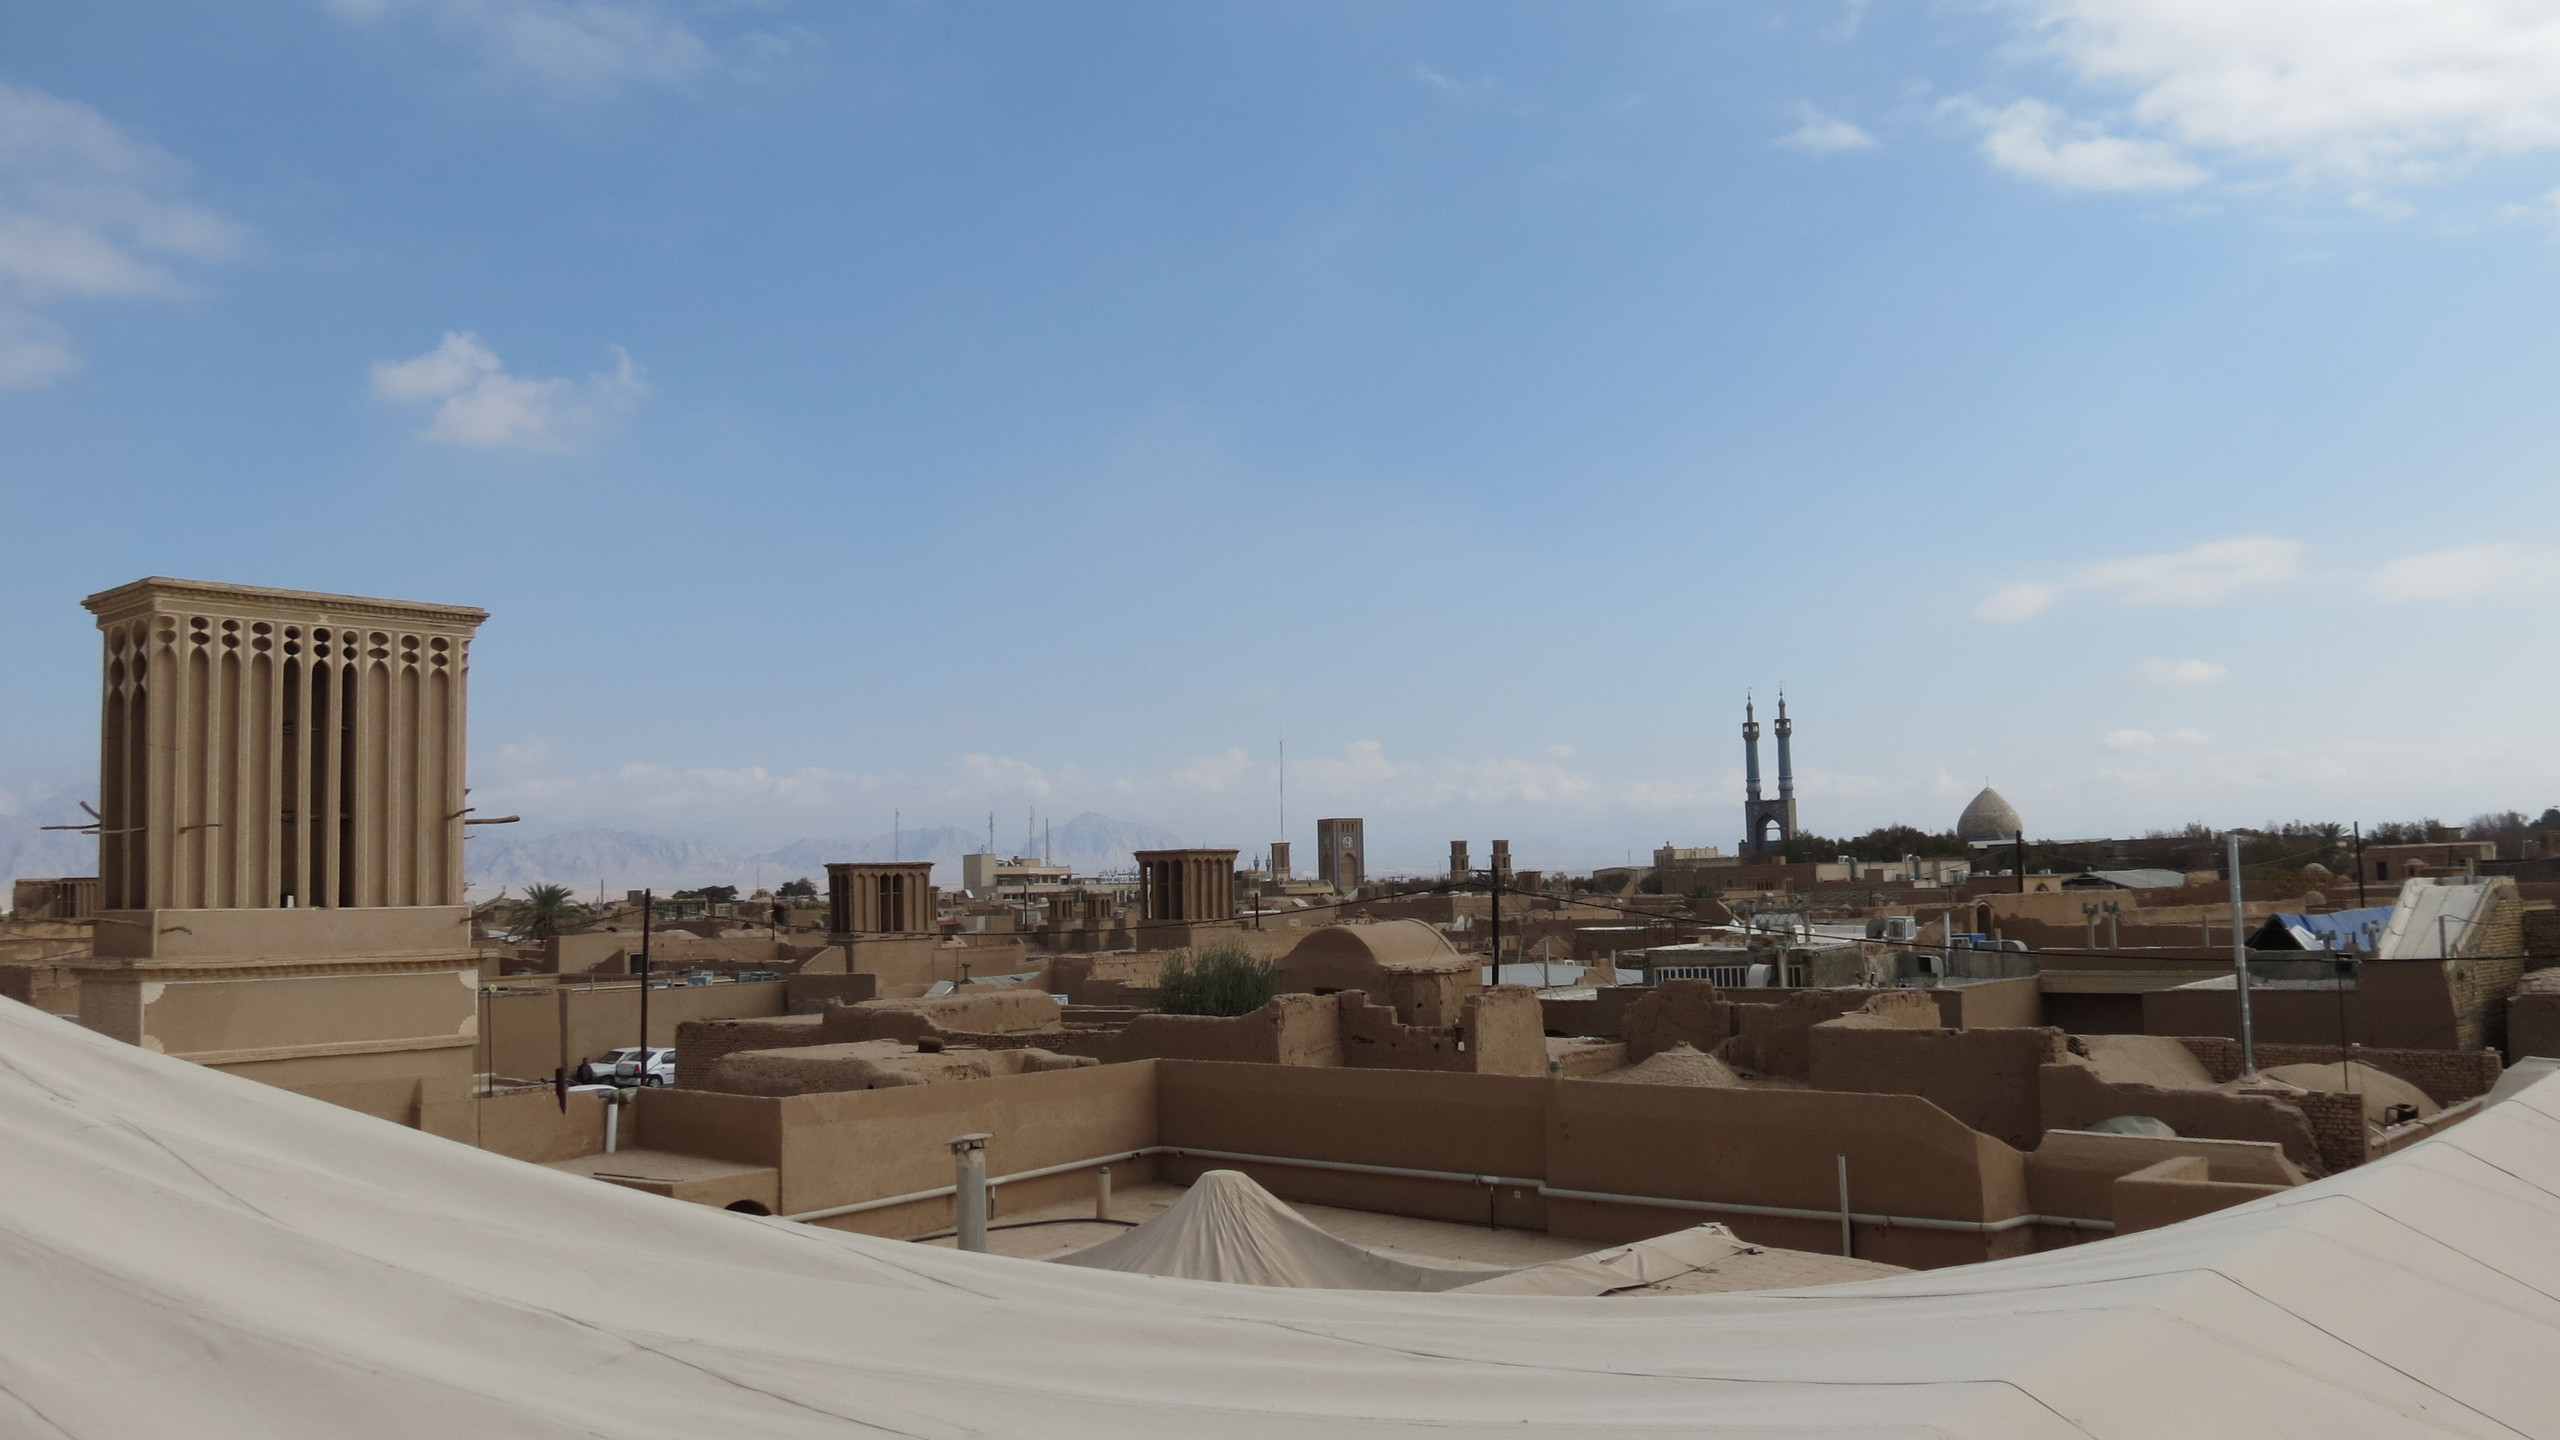 IMG_3557 - yazd view from Mehr Hotel